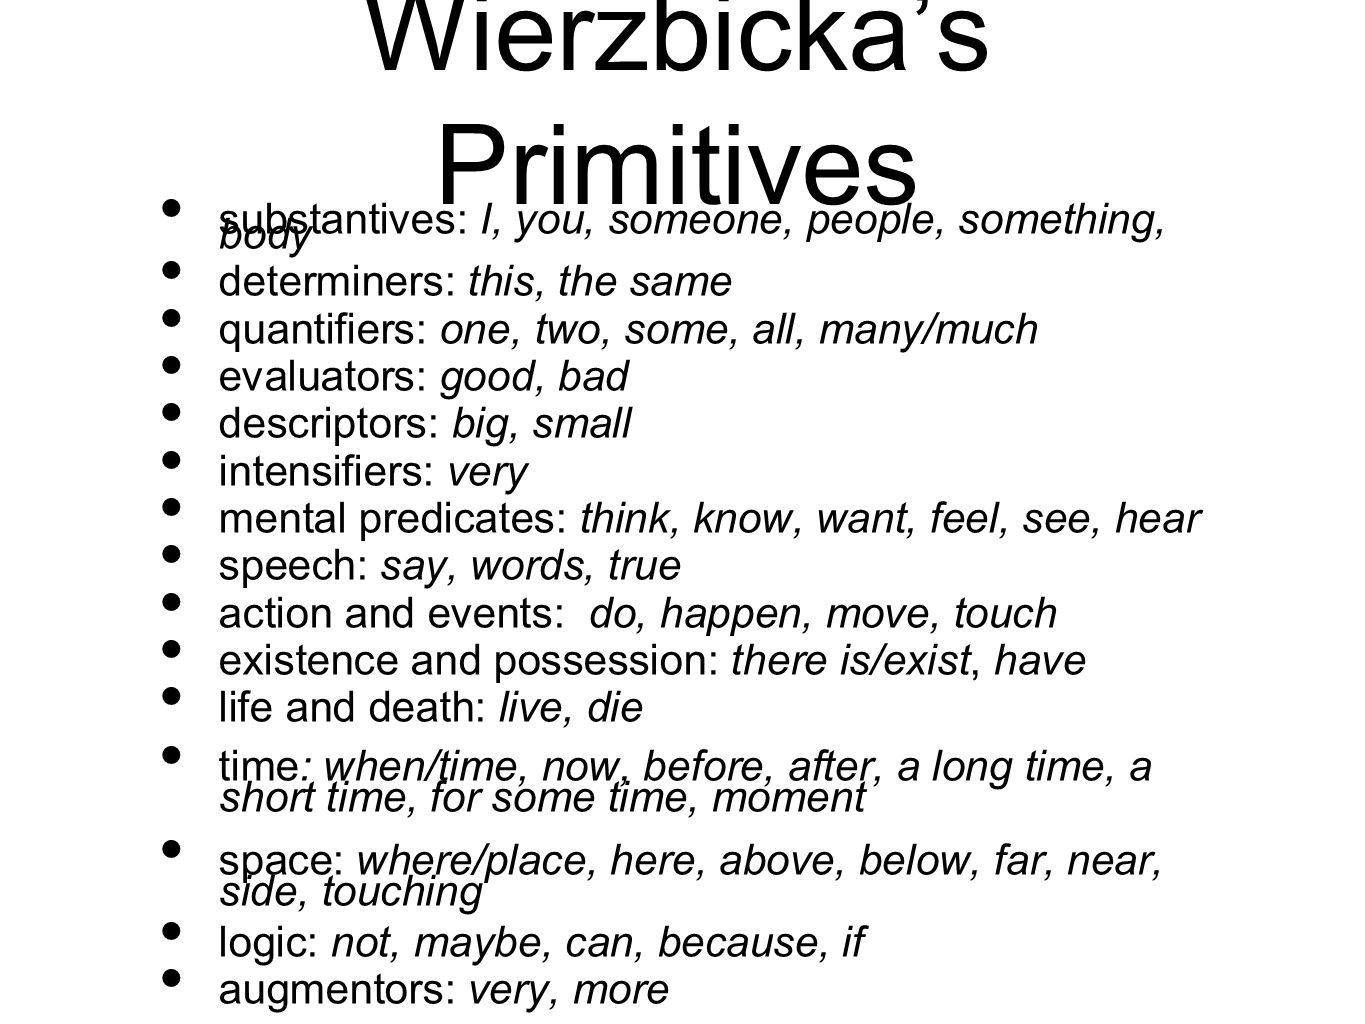 Wierzbickas Primitives substantives: I, you, someone, people, something, body determiners: this, the same quantifiers: one, two, some, all, many/much